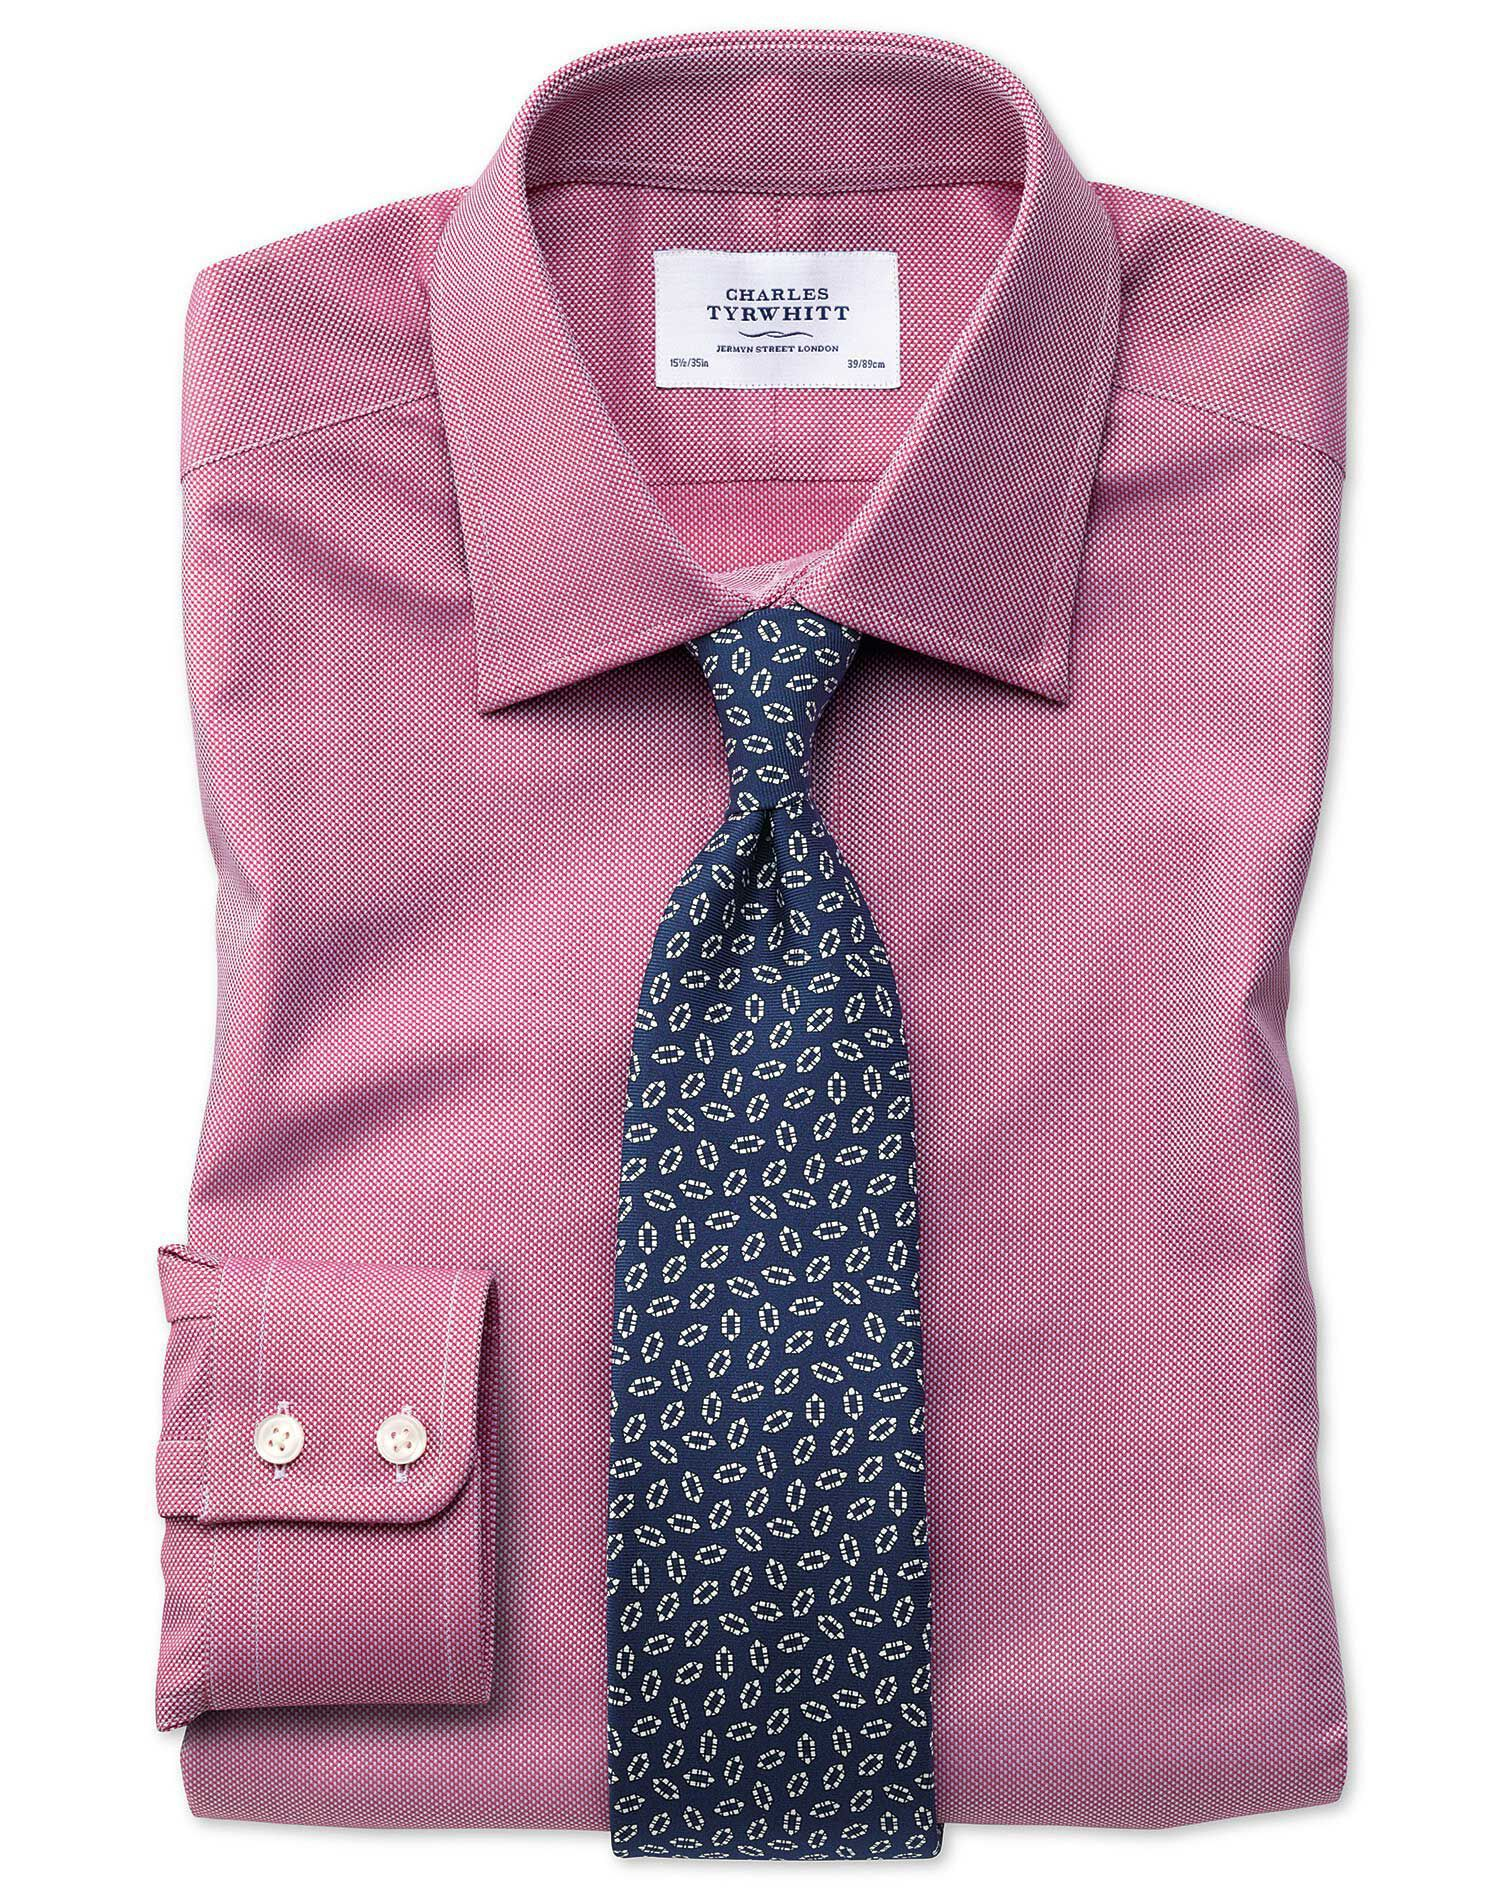 Extra Slim Fit Egyptian Cotton Royal Oxford Magenta Formal Shirt Double Cuff Size 16.5/33 by Charles